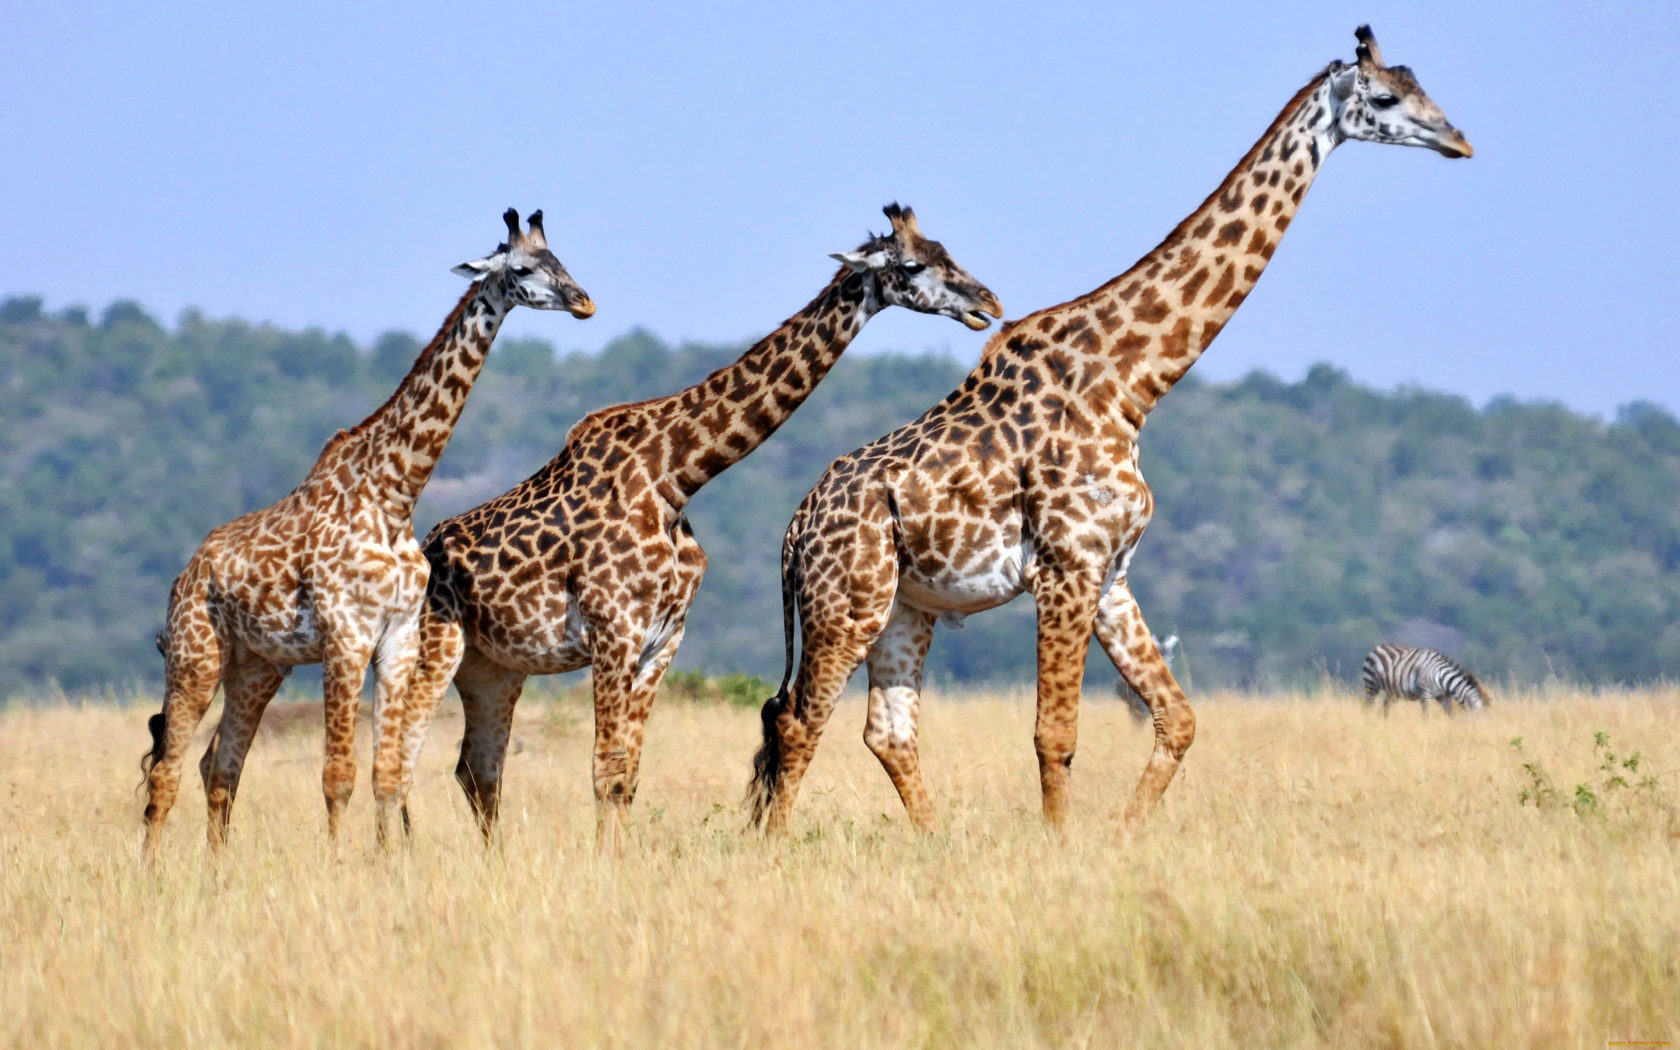 Animated Christmas Wallpaper For Iphone Three Giraffes Animals With Long Neck Striped Body Casts